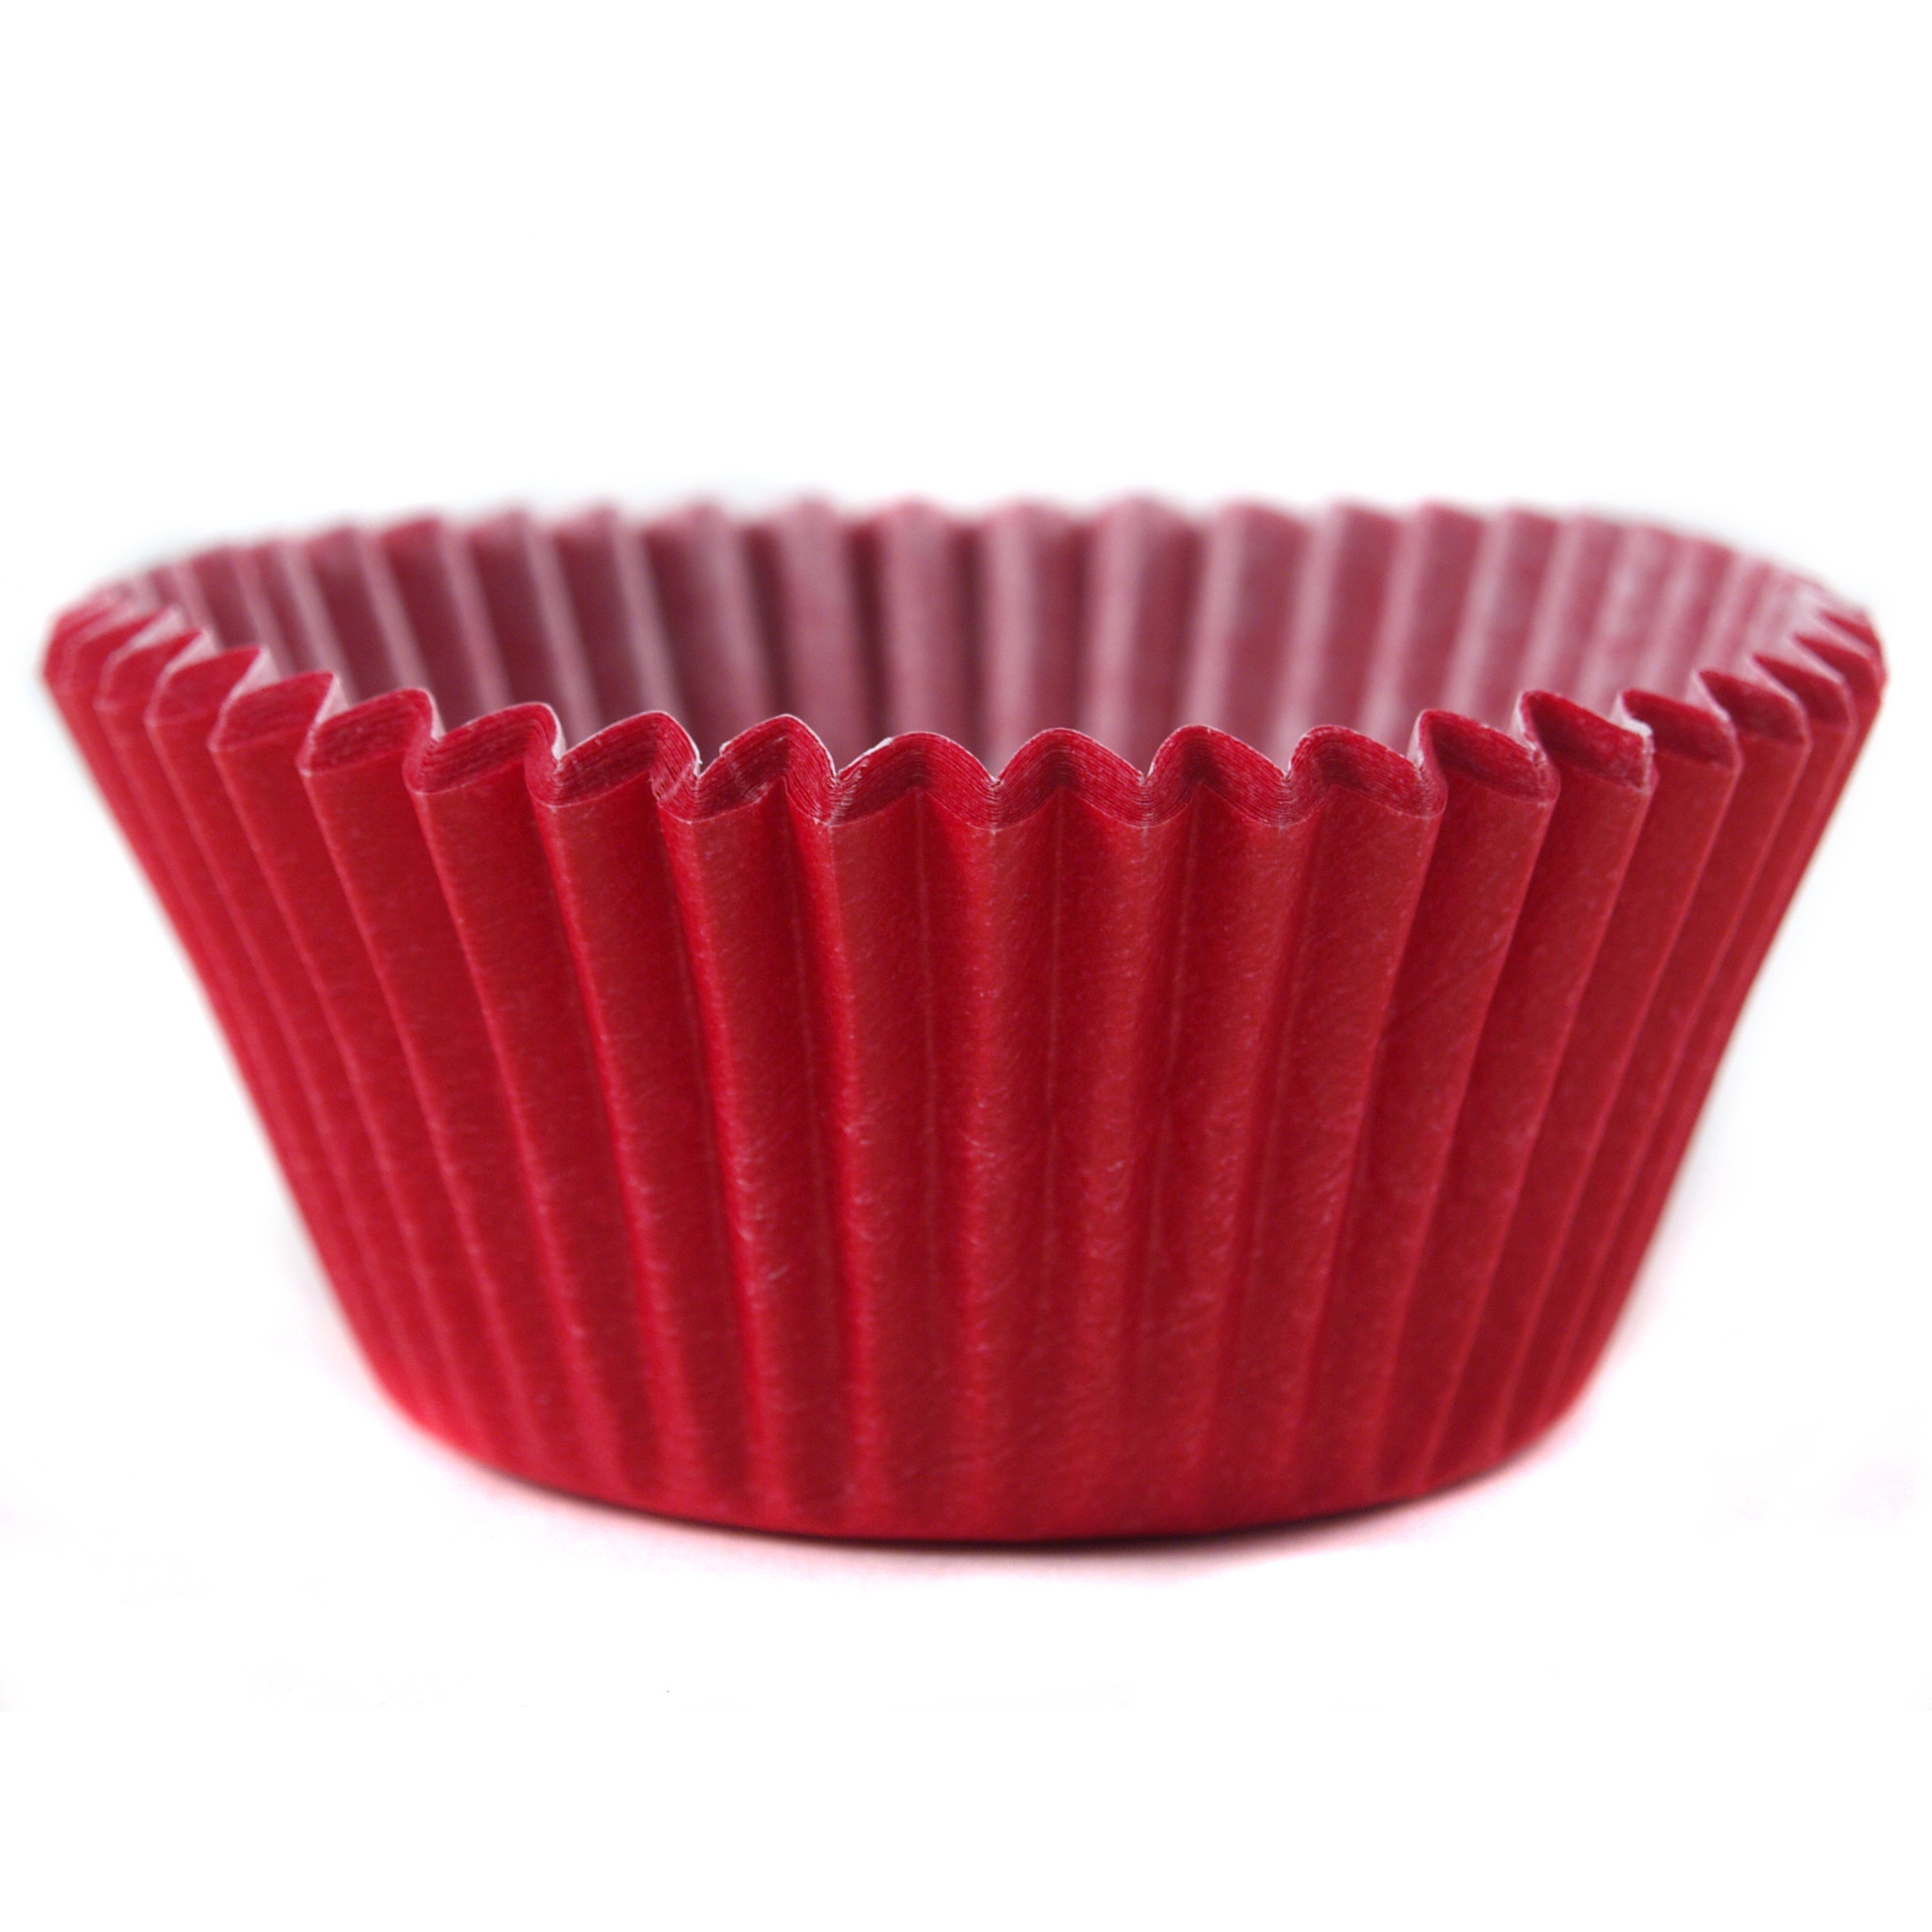 Cupcake Creations Solid Red Baking Cup, Set of 32